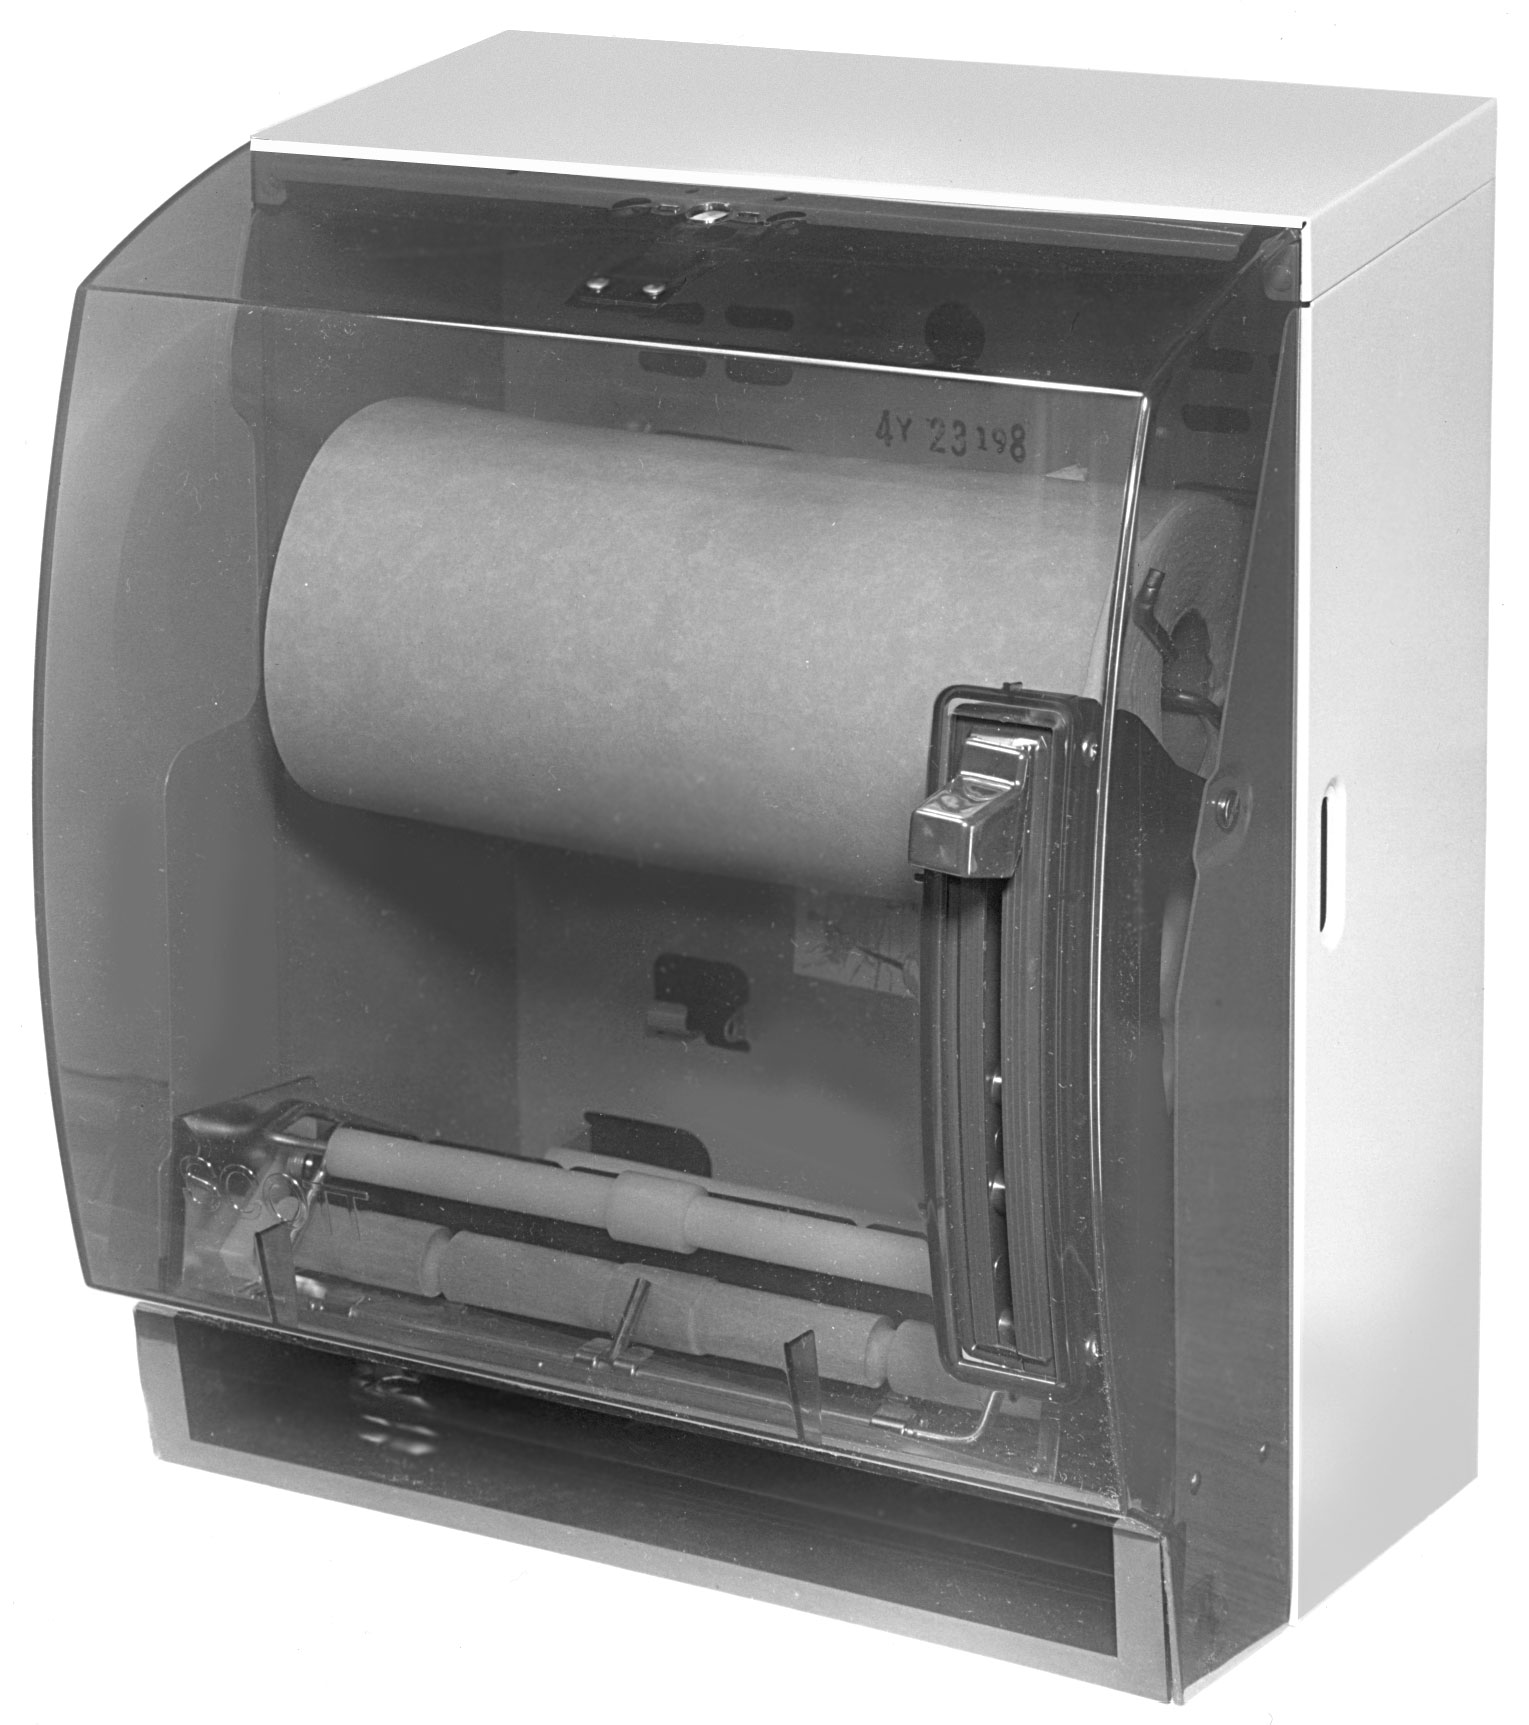 Towel Dispenser Bradley Corporation